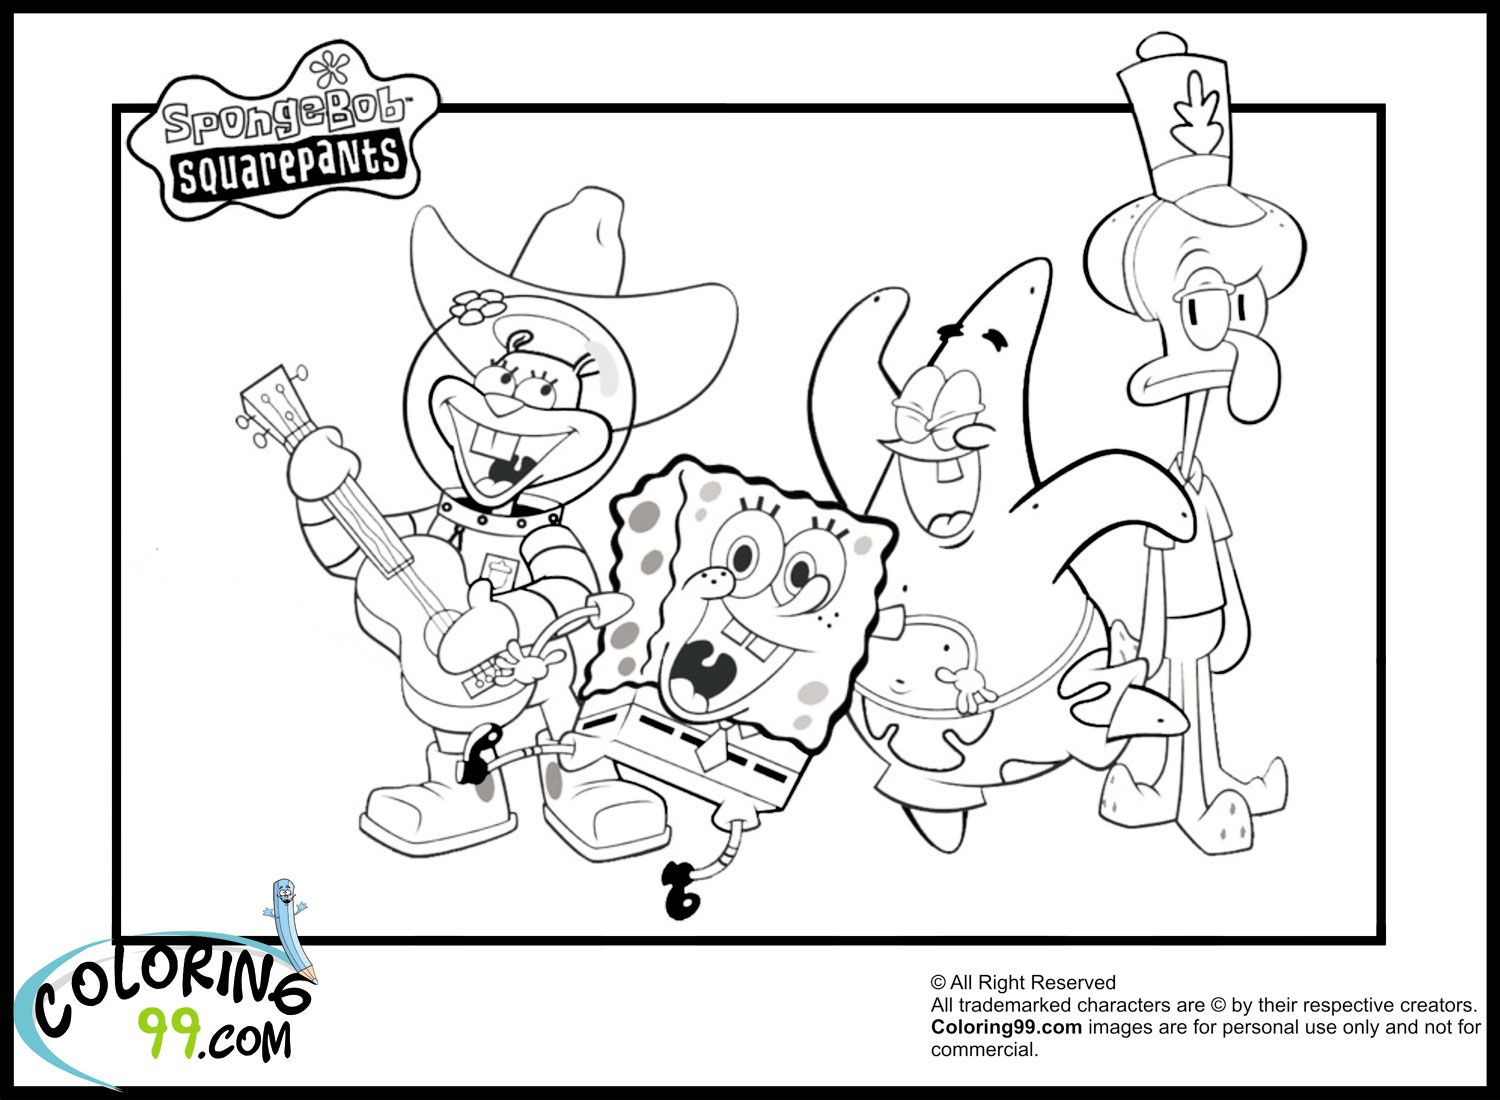 coloring pages online spongebob : Spongebob Printable Coloring Pages Printable Spongebob Printable Coloring Pages Free Spongebob Printable Coloring Pages